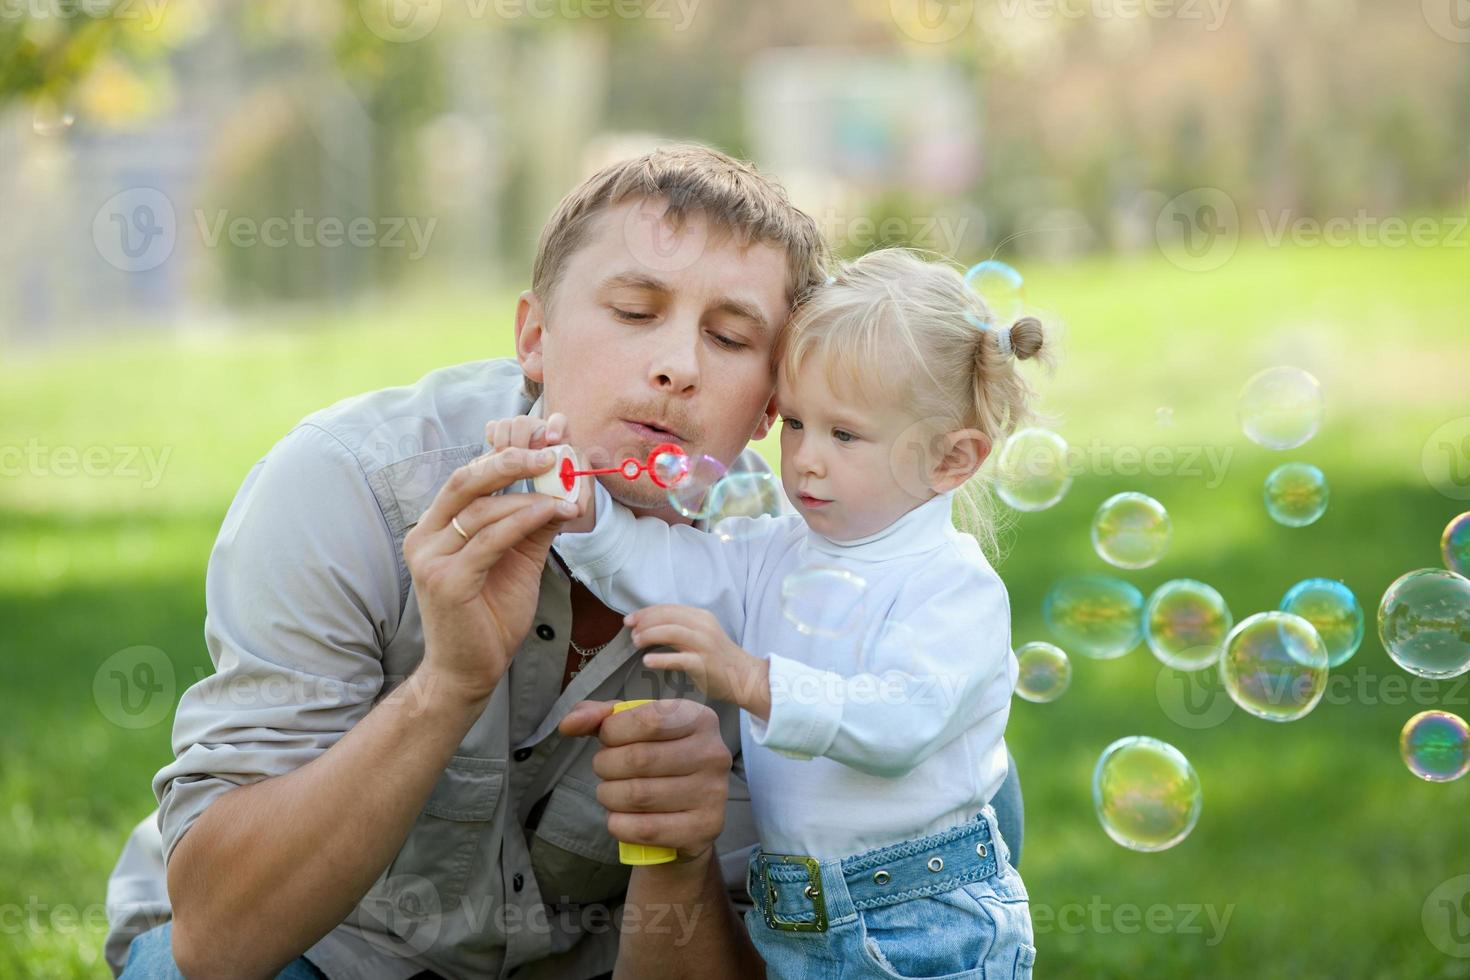 A dad and his daughter blowing bubbles in a park photo